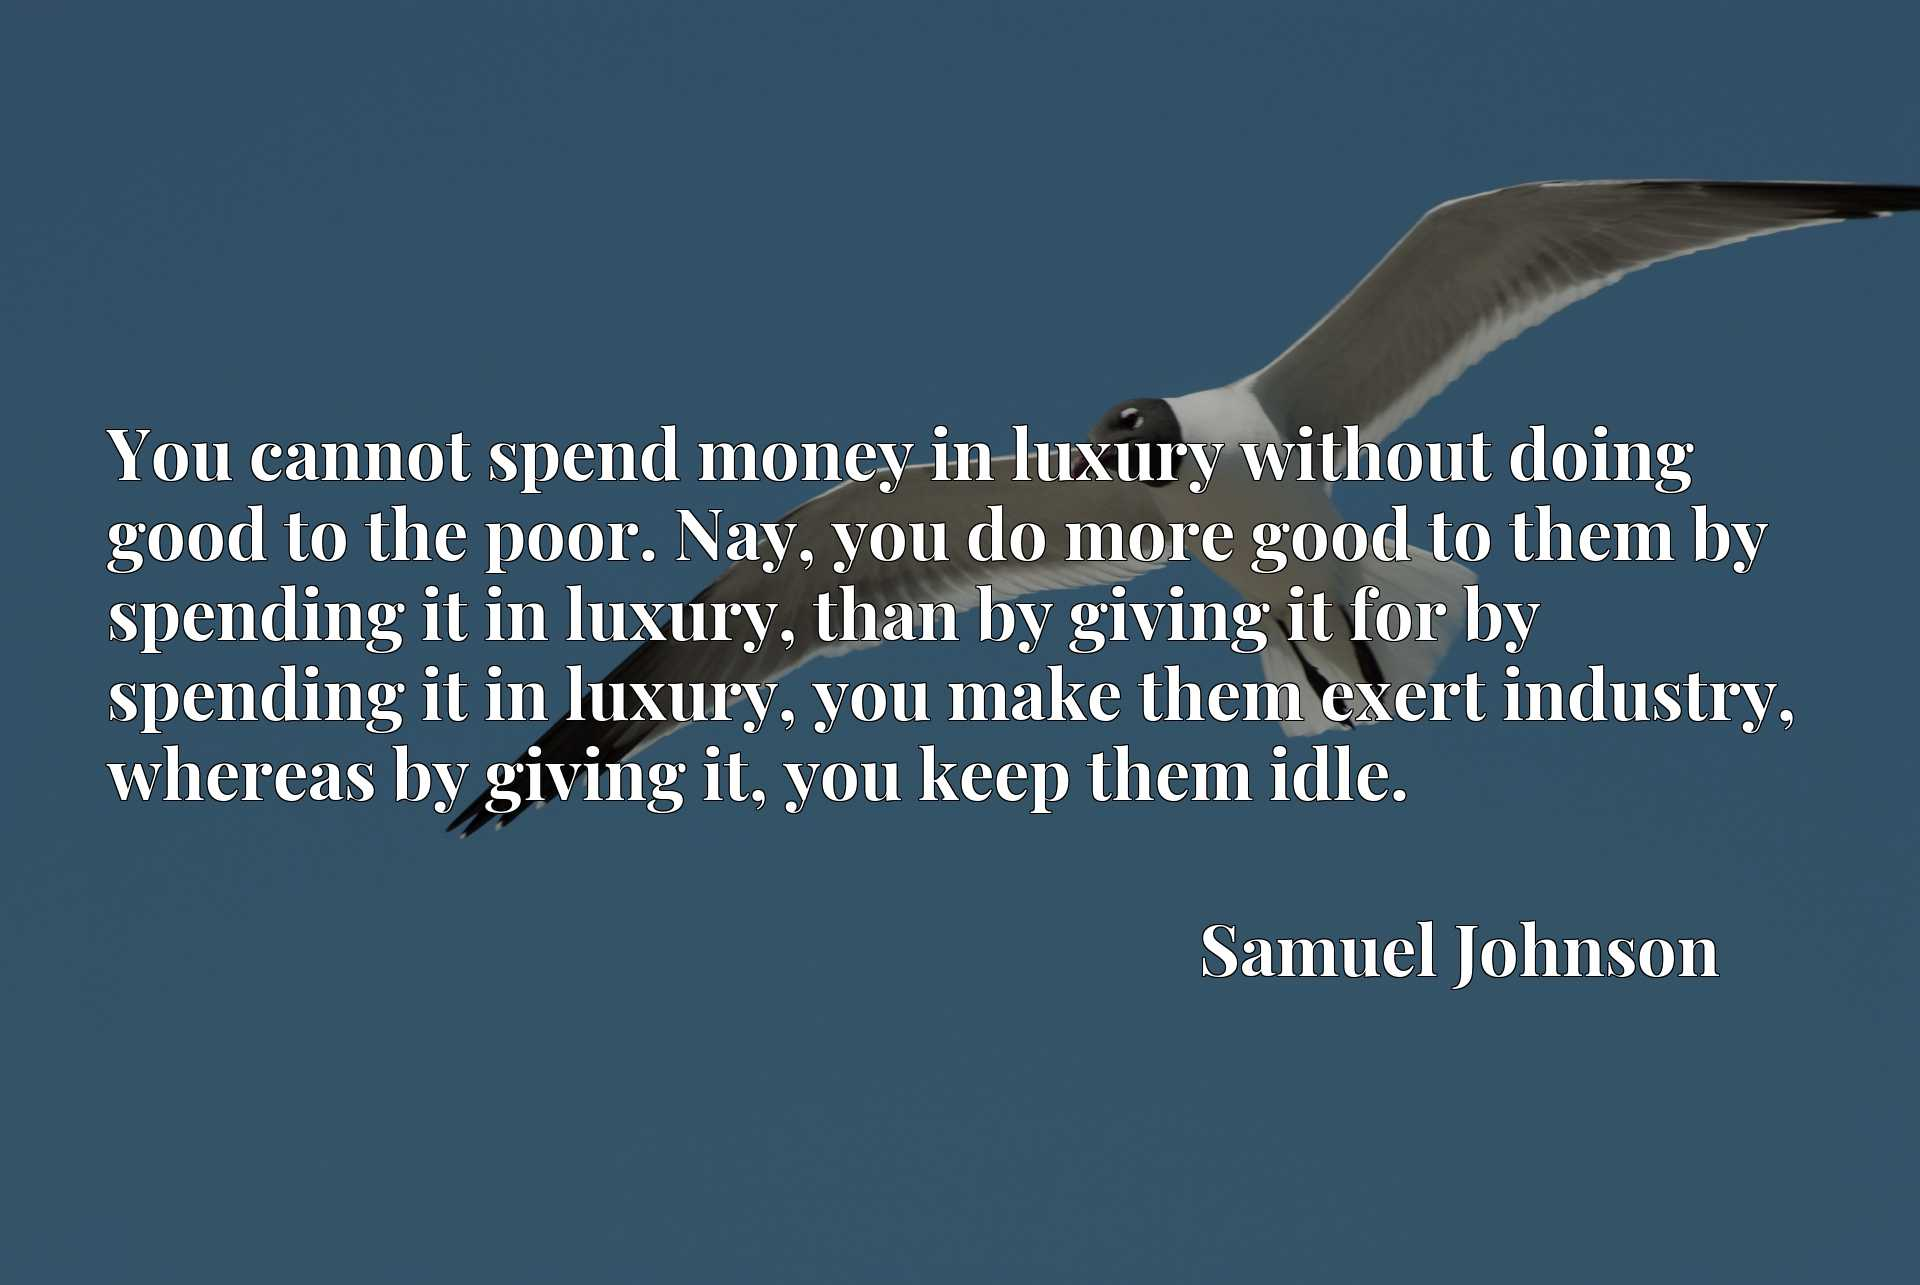 You cannot spend money in luxury without doing good to the poor. Nay, you do more good to them by spending it in luxury, than by giving it for by spending it in luxury, you make them exert industry, whereas by giving it, you keep them idle.